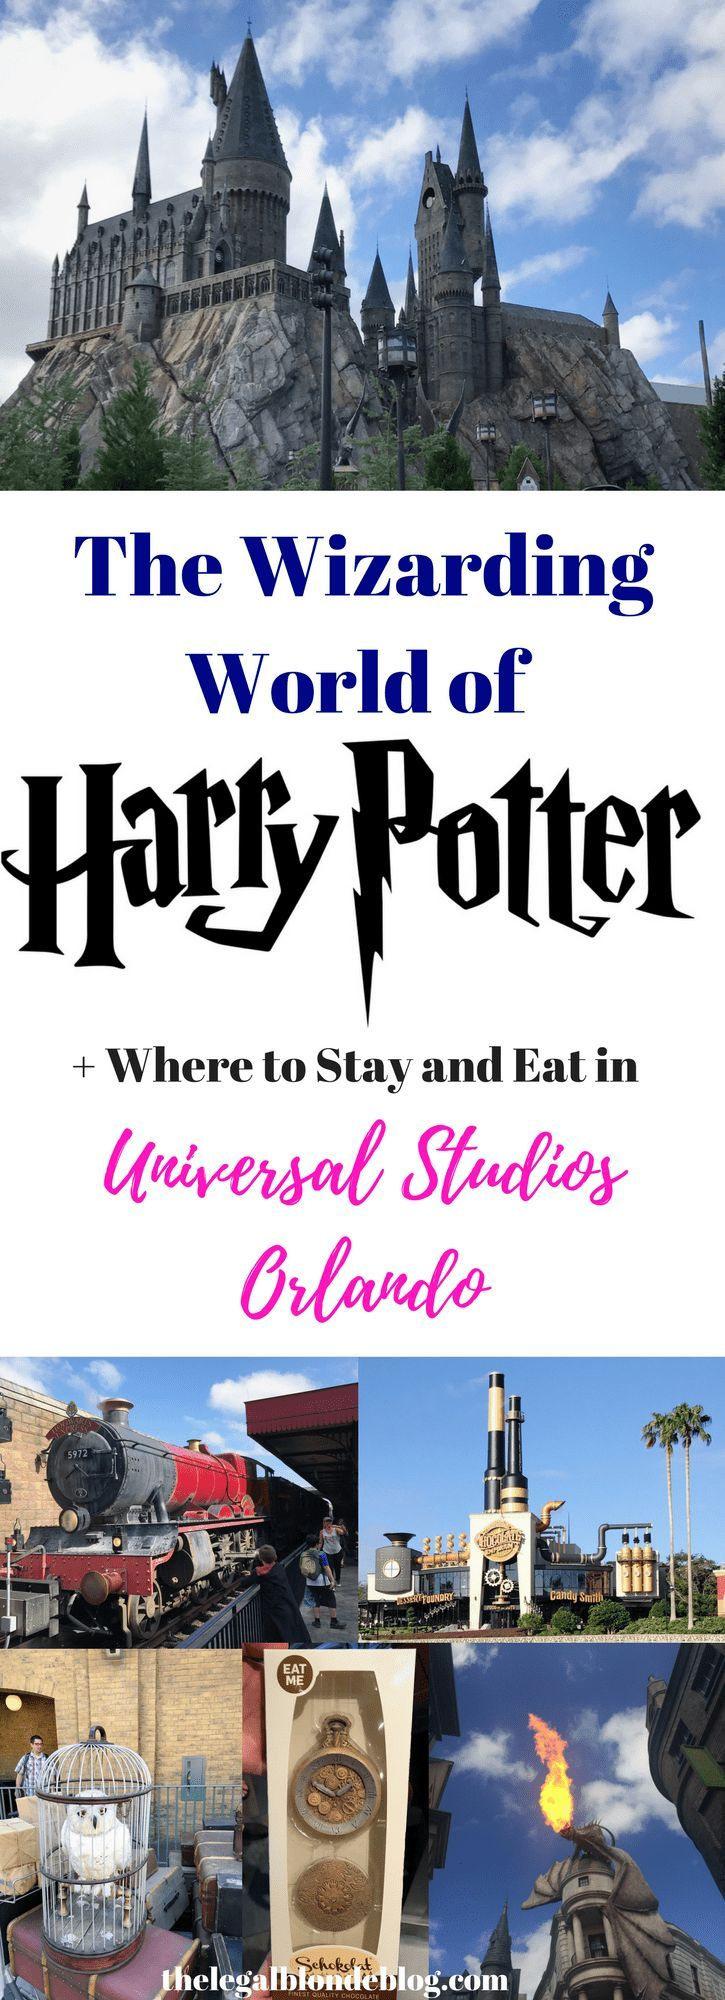 Hey, guys! Every year my husband and I travel to Universal Studios in Orlando, Florida for Halloween Horror Nights. We have made it a tradition to spend a few days at Islands of Adventure and Universal Studios during the day to take advantage of all the awesome rides and attractions such as The Wizarding World …